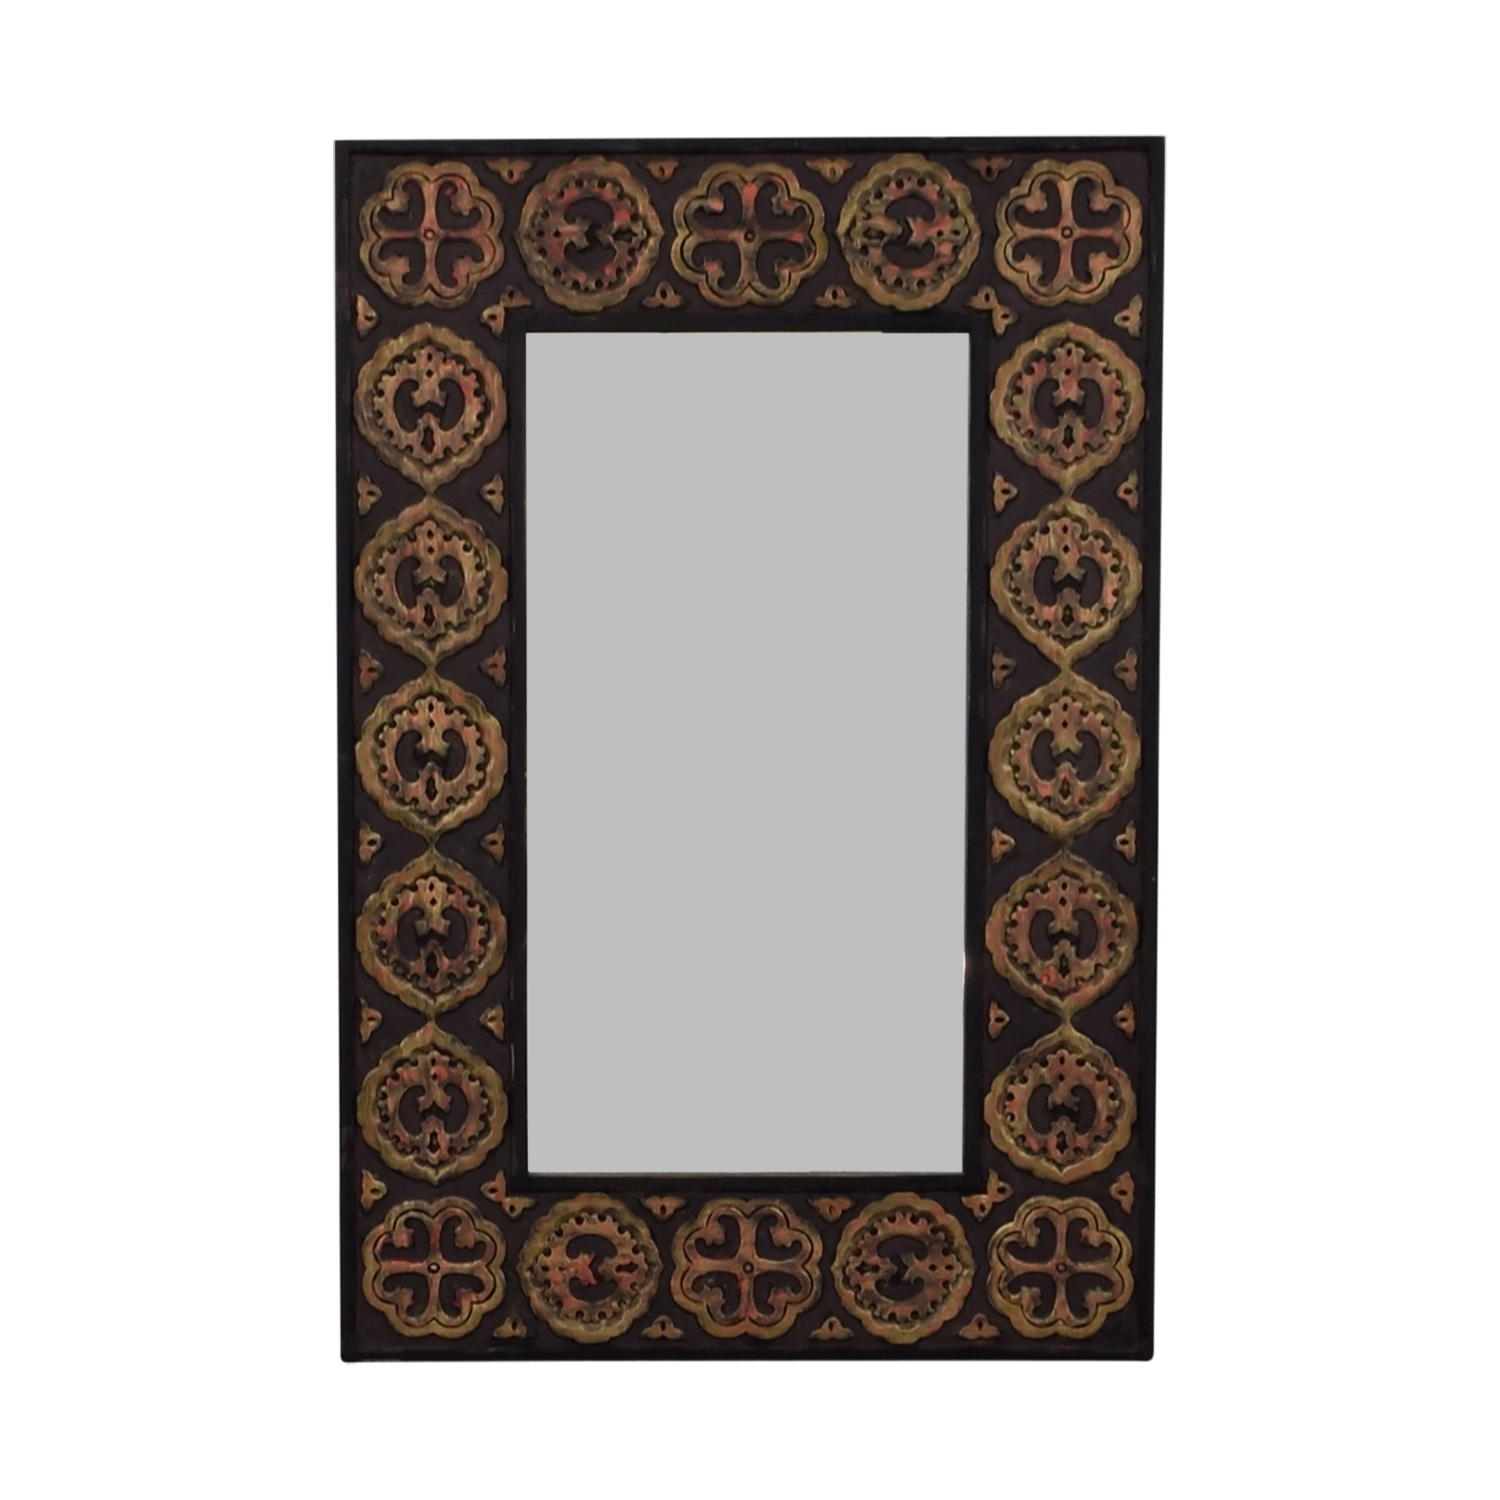 [%90% Off – Pier 1 Pier One Imports Mirror With Rustic Gold Emblemed Frame / Decor Inside Trendy Pier One Wall Mirrors|Pier One Wall Mirrors For Fashionable 90% Off – Pier 1 Pier One Imports Mirror With Rustic Gold Emblemed Frame / Decor|Latest Pier One Wall Mirrors Intended For 90% Off – Pier 1 Pier One Imports Mirror With Rustic Gold Emblemed Frame / Decor|Well Liked 90% Off – Pier 1 Pier One Imports Mirror With Rustic Gold Emblemed Frame / Decor Intended For Pier One Wall Mirrors%] (View 19 of 20)